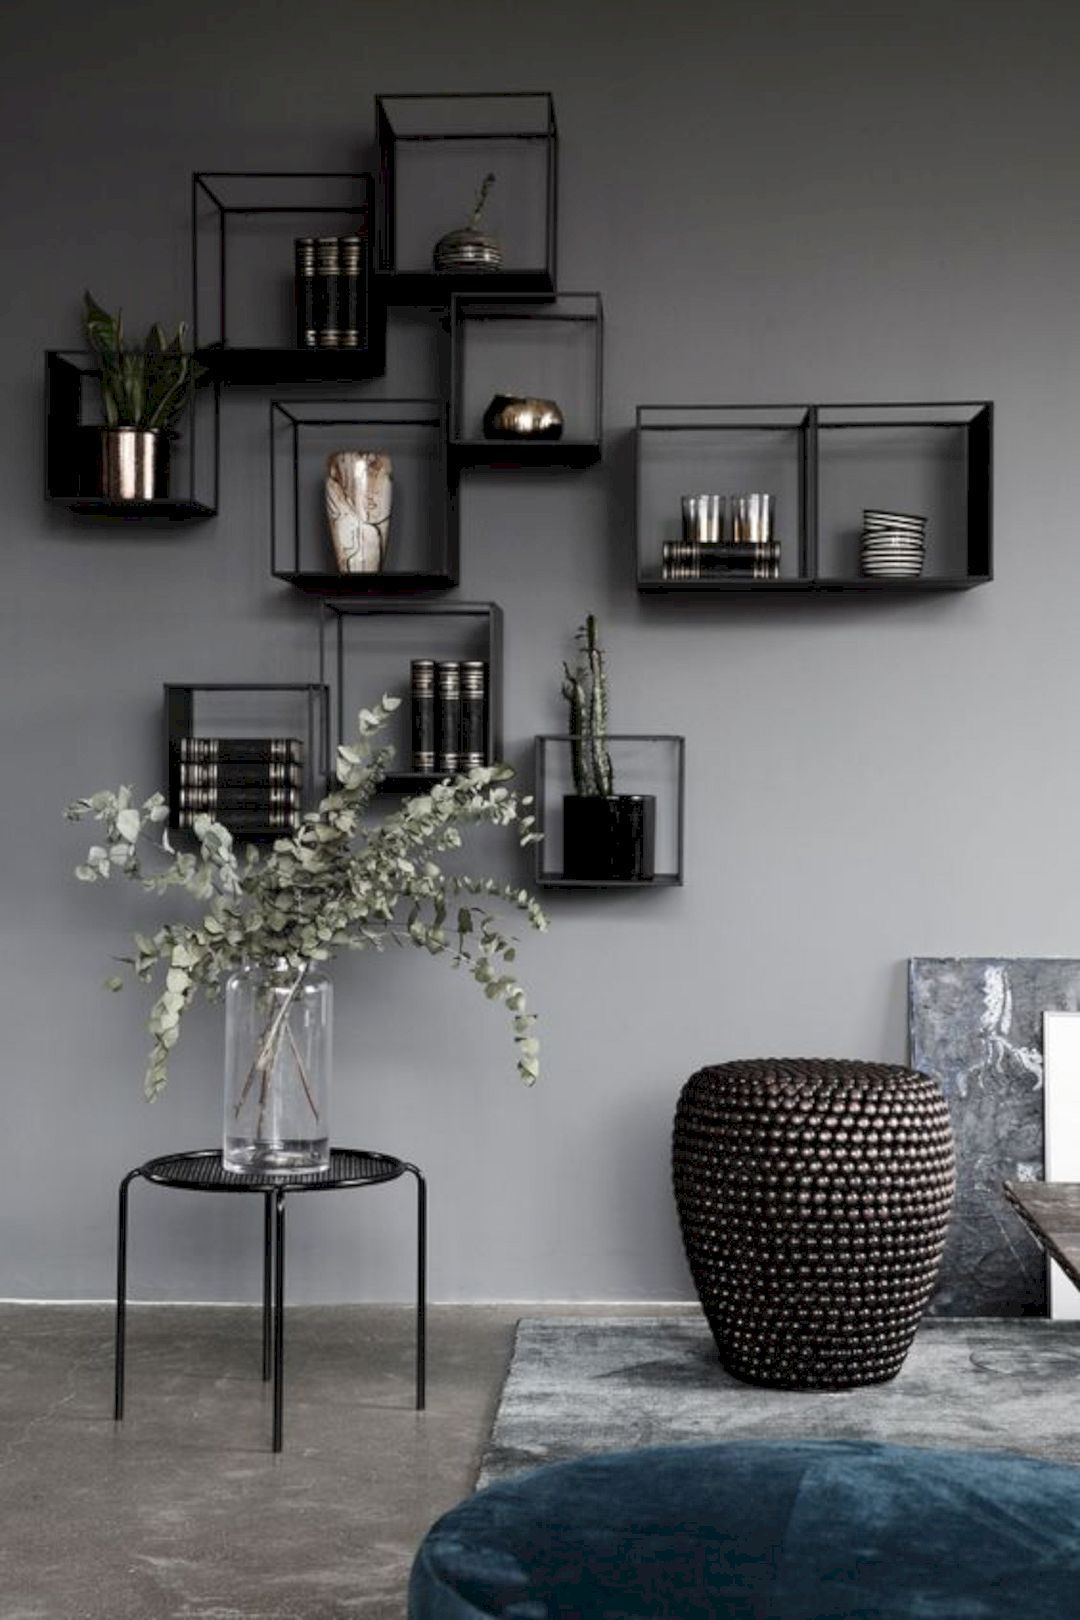 15 Modern Wall Decorations to Inspire You   Futurist Architecture  #architecture #decorations #futurist #inspire #modern #walldecor